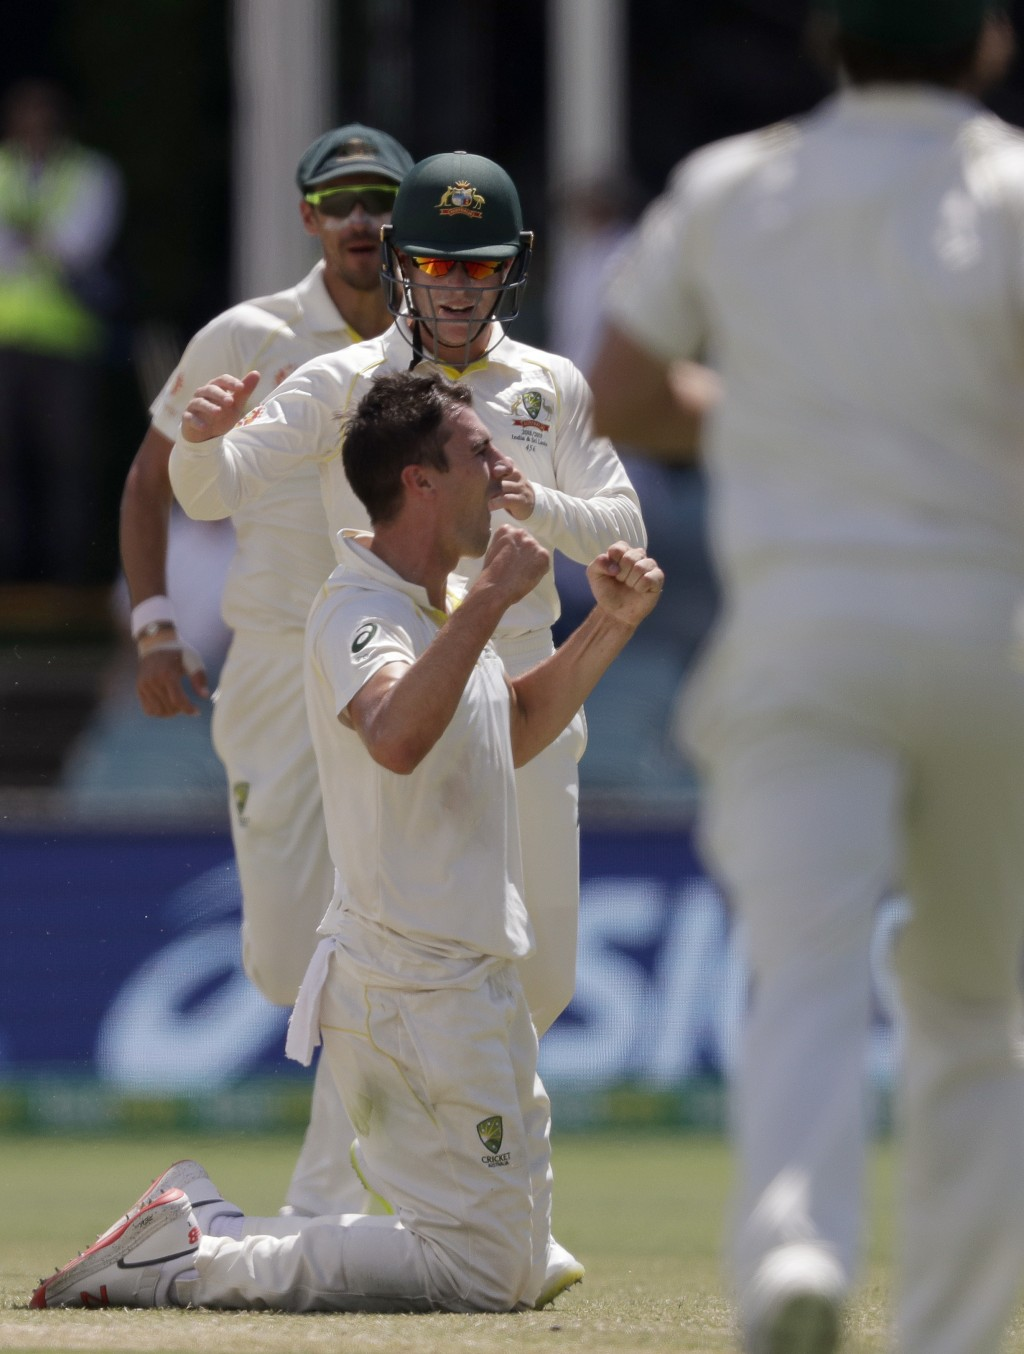 Australia's Pat Cummins, front left, celebrates his caught and bowled on Sri Lanka's Lahiru Thirimanne on day 4 of their cricket test match in Canberr...